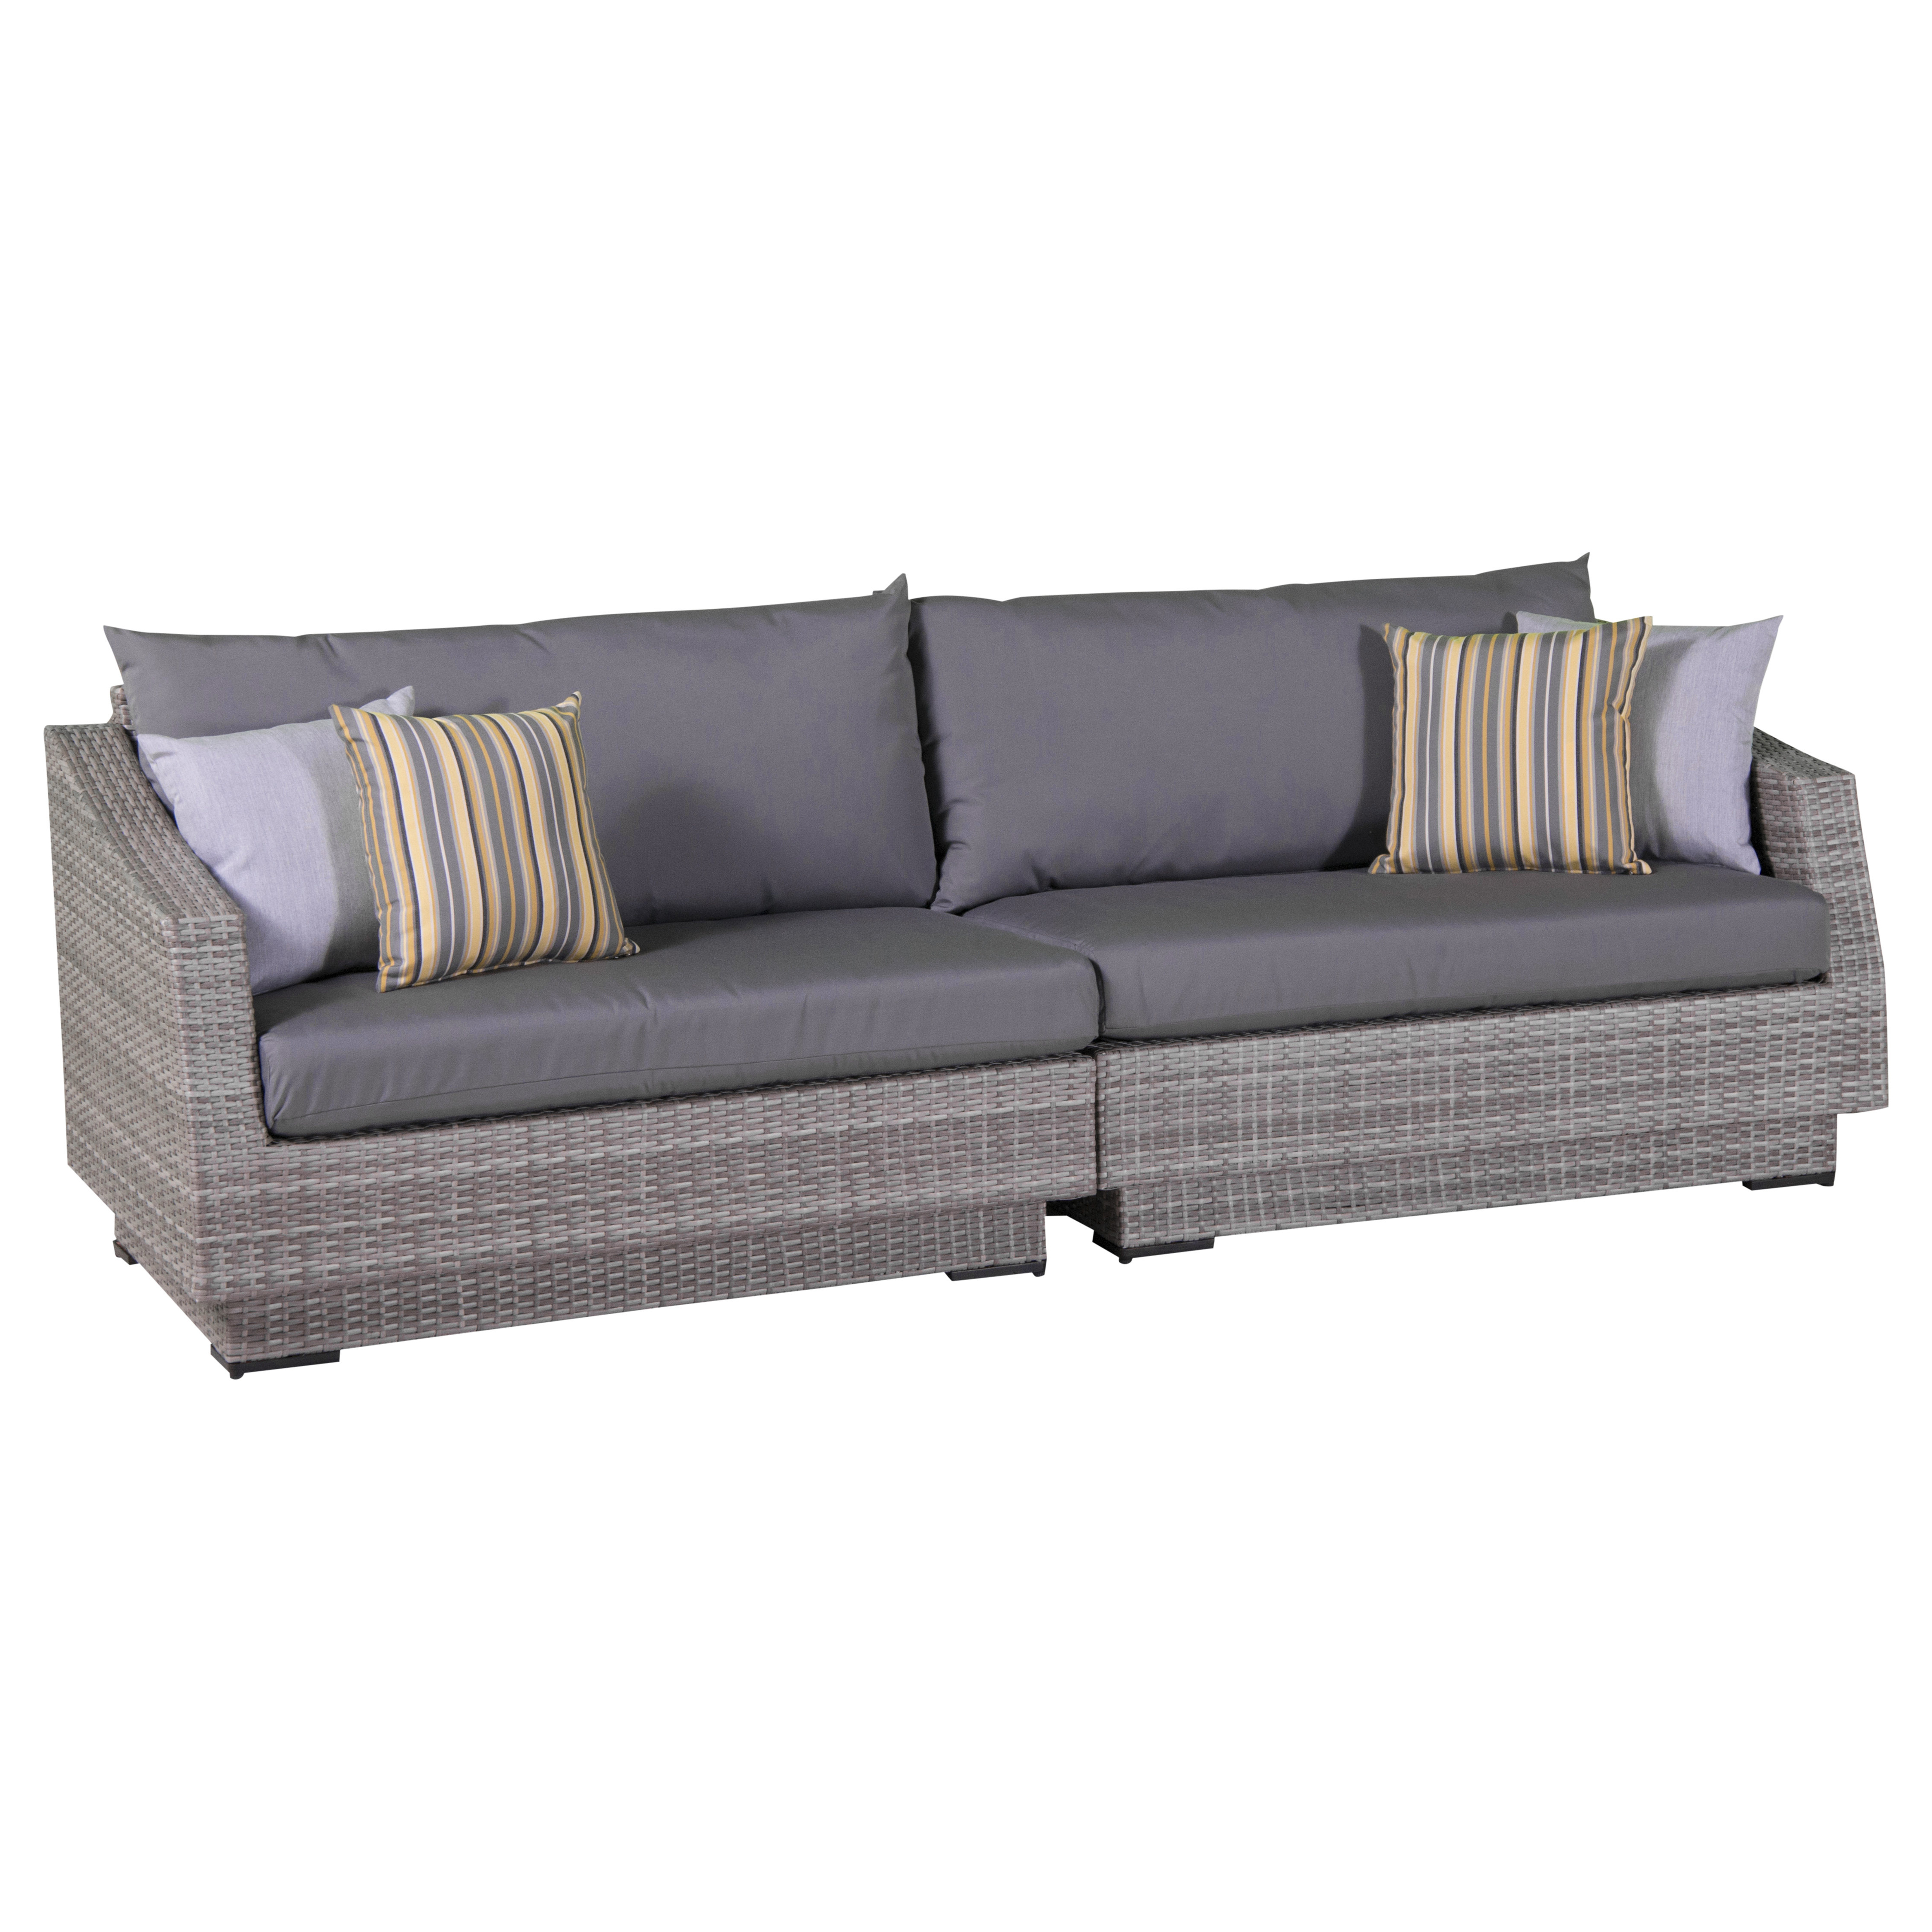 Castelli Sofa With Sunbrella Cushions With Latest Castelli Loveseats With Cushions (View 8 of 20)